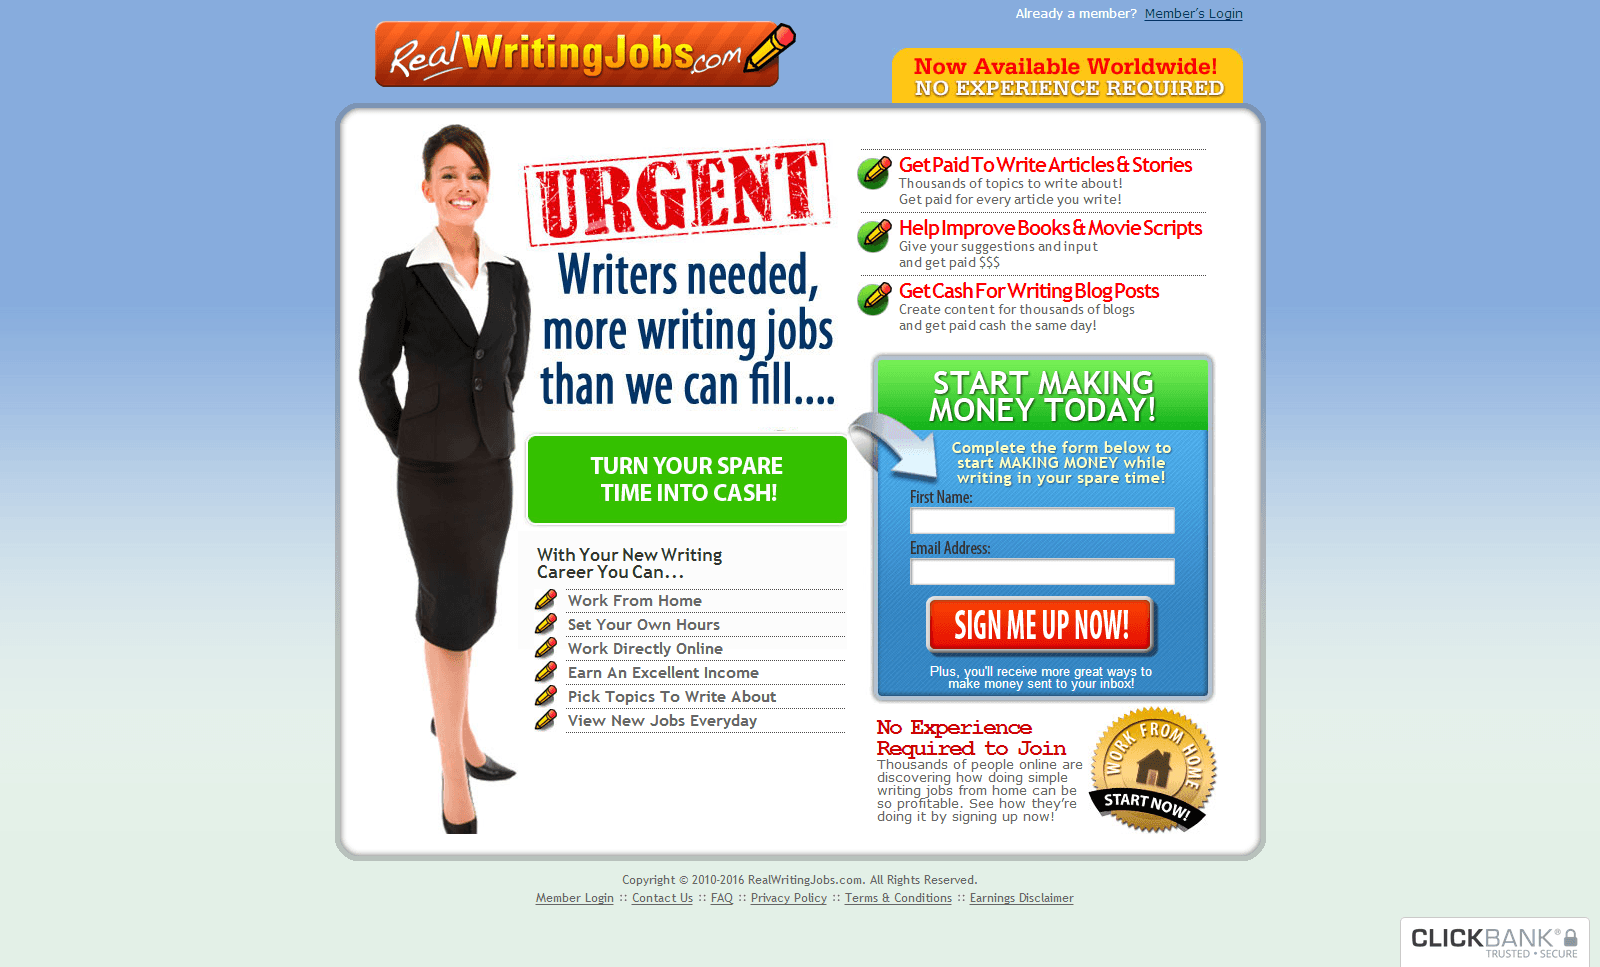 online review writing jobs how to write an application letter on  real writing jobs review scam alert best affiliate real writing jobs review paid online writing jobs